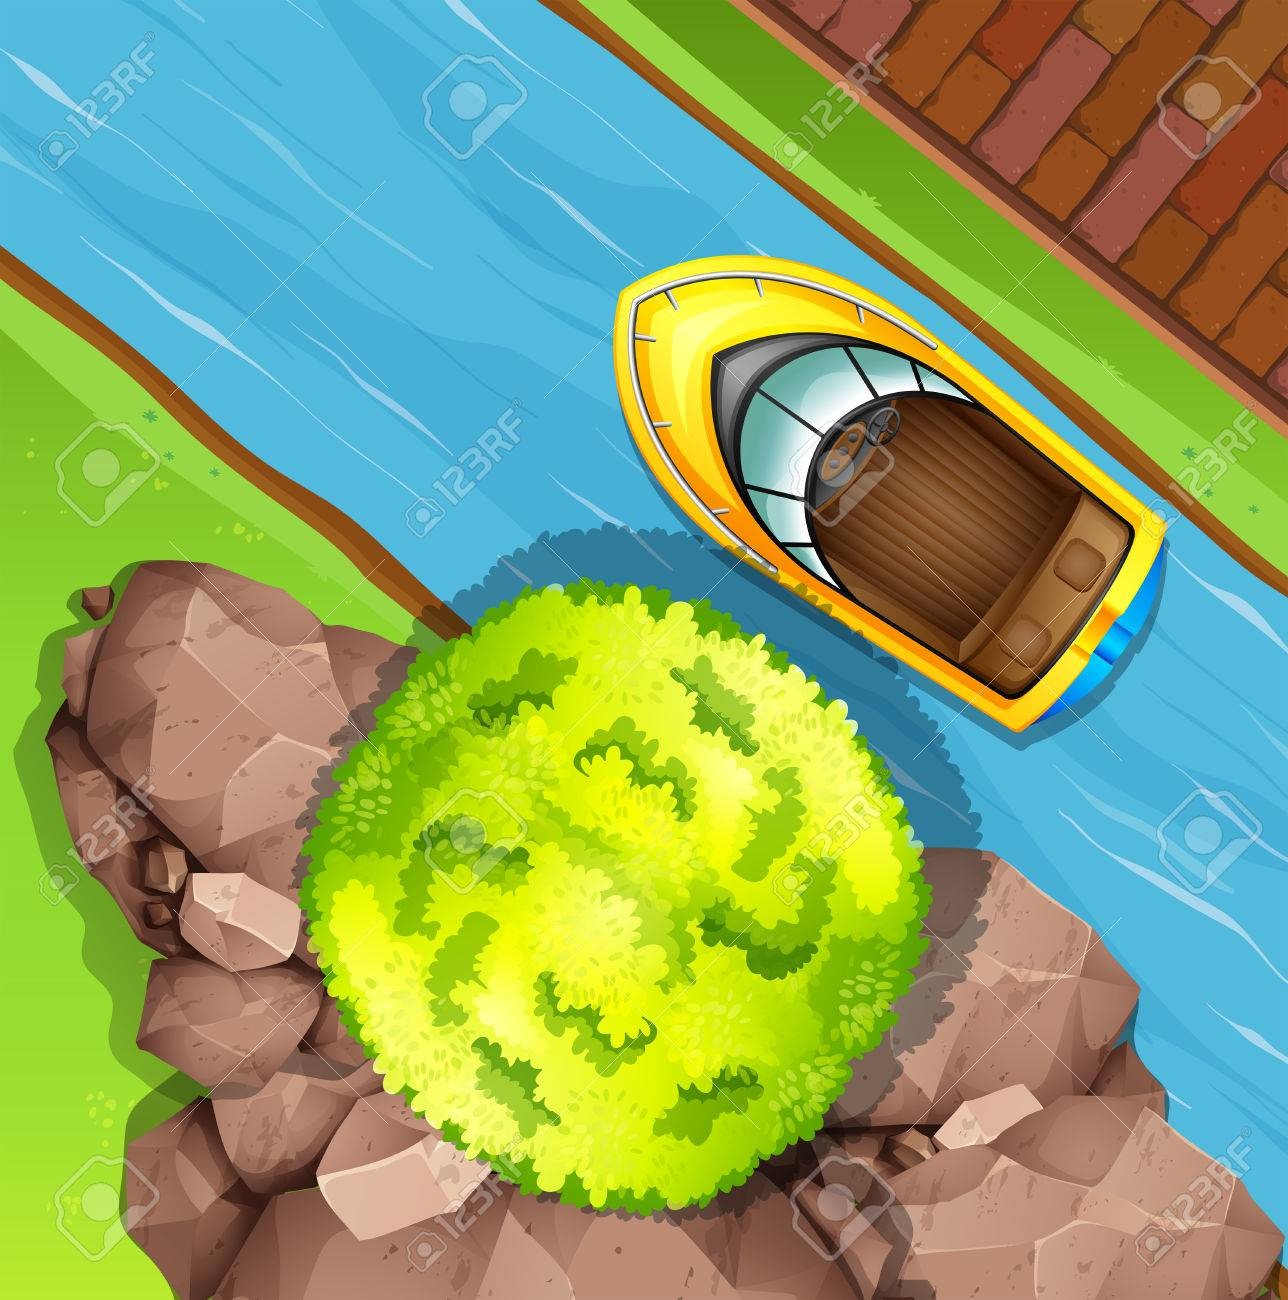 Top Speed Clipart Top View of Speed Boat on The